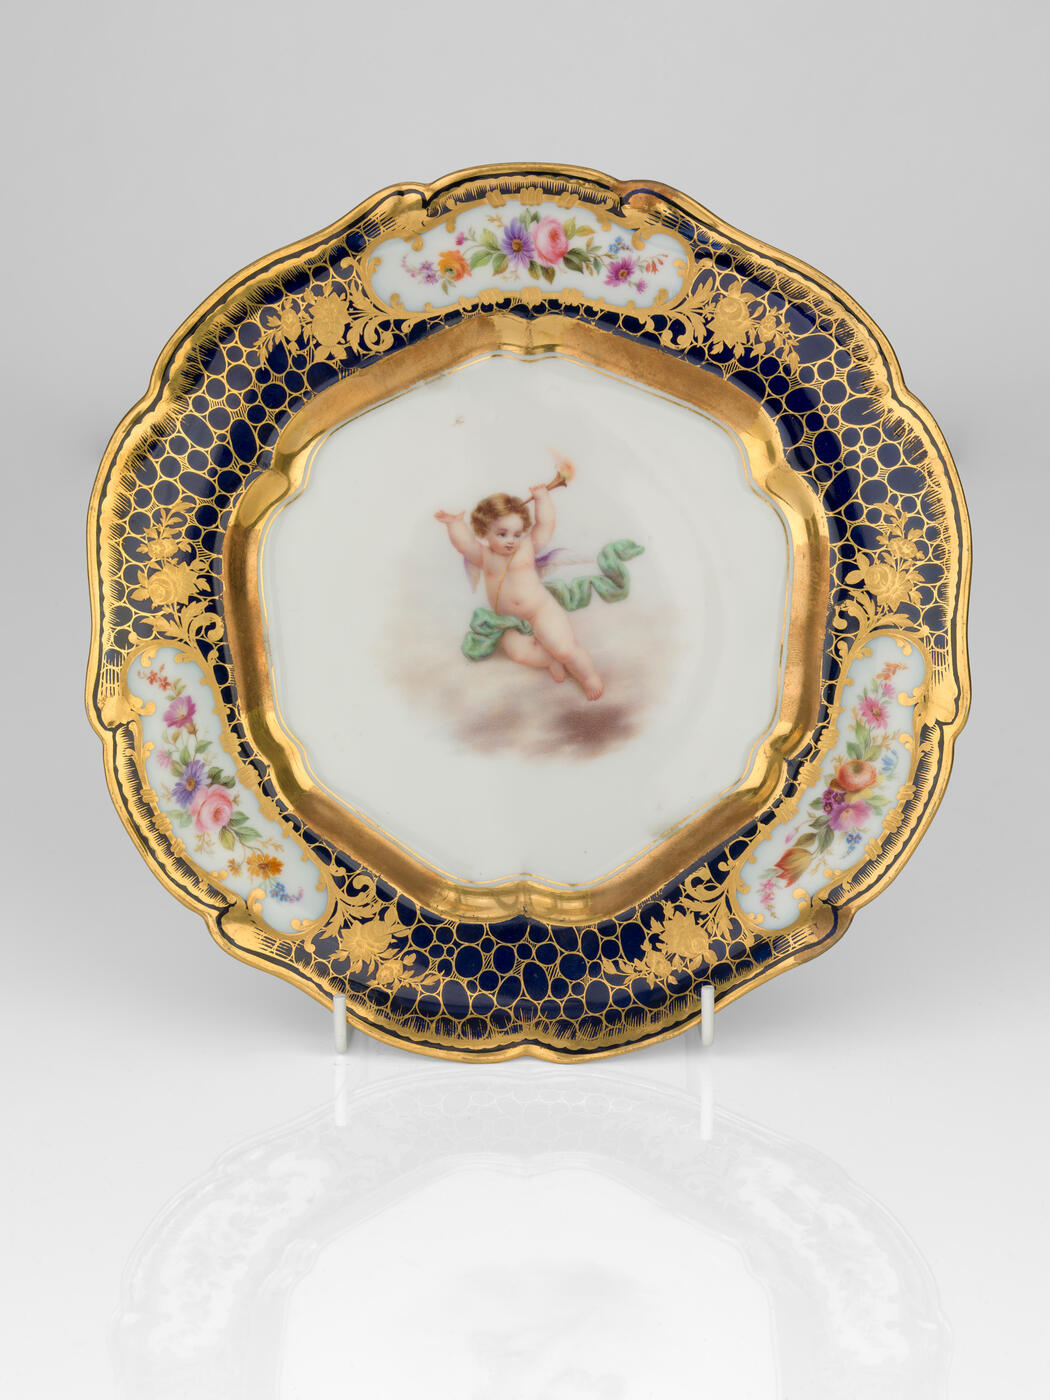 A Porcelain Dessert Plate with Angel Putti